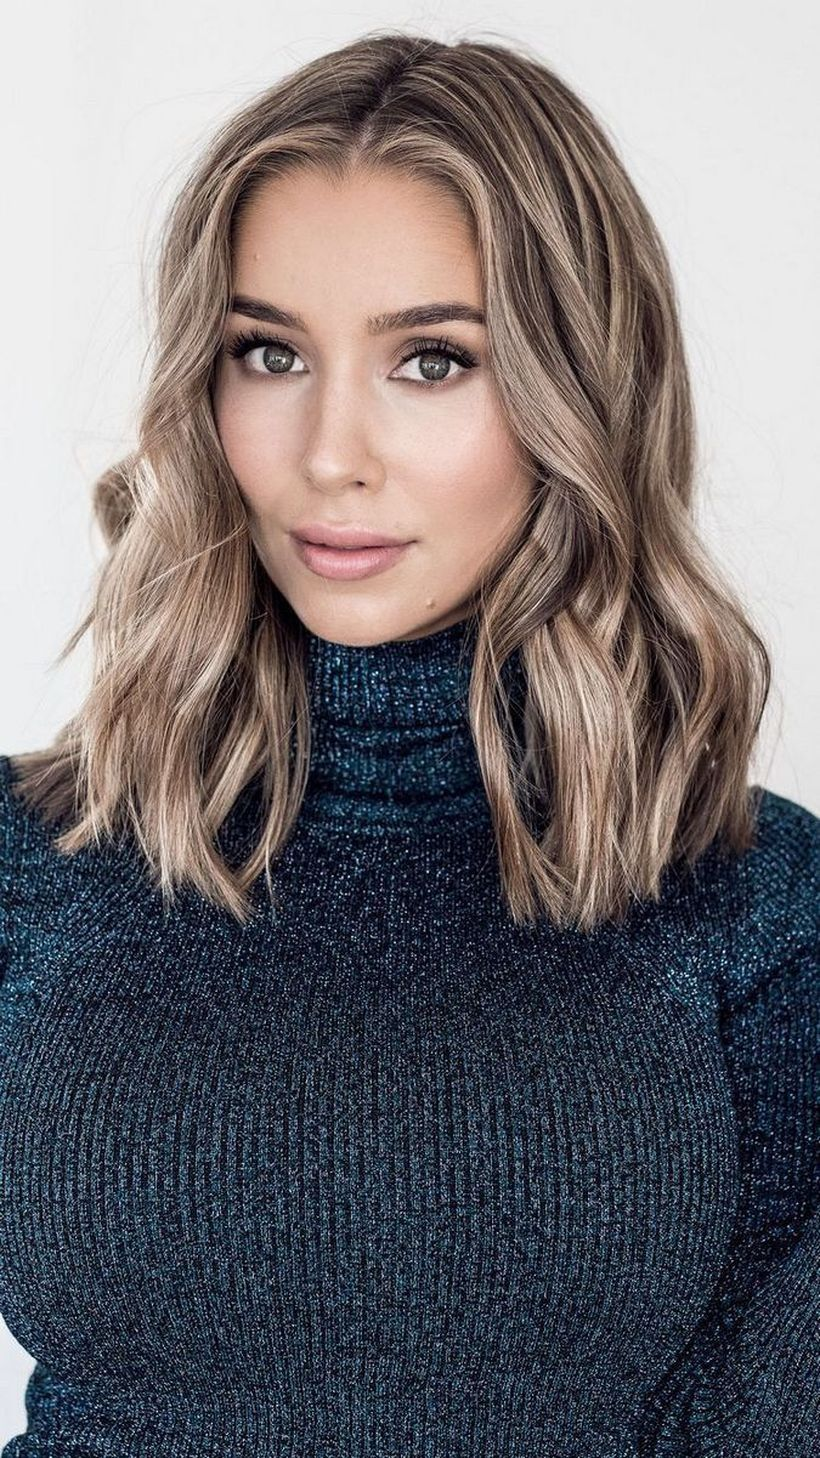 47 outstanding hairstyle ideas for women that will look